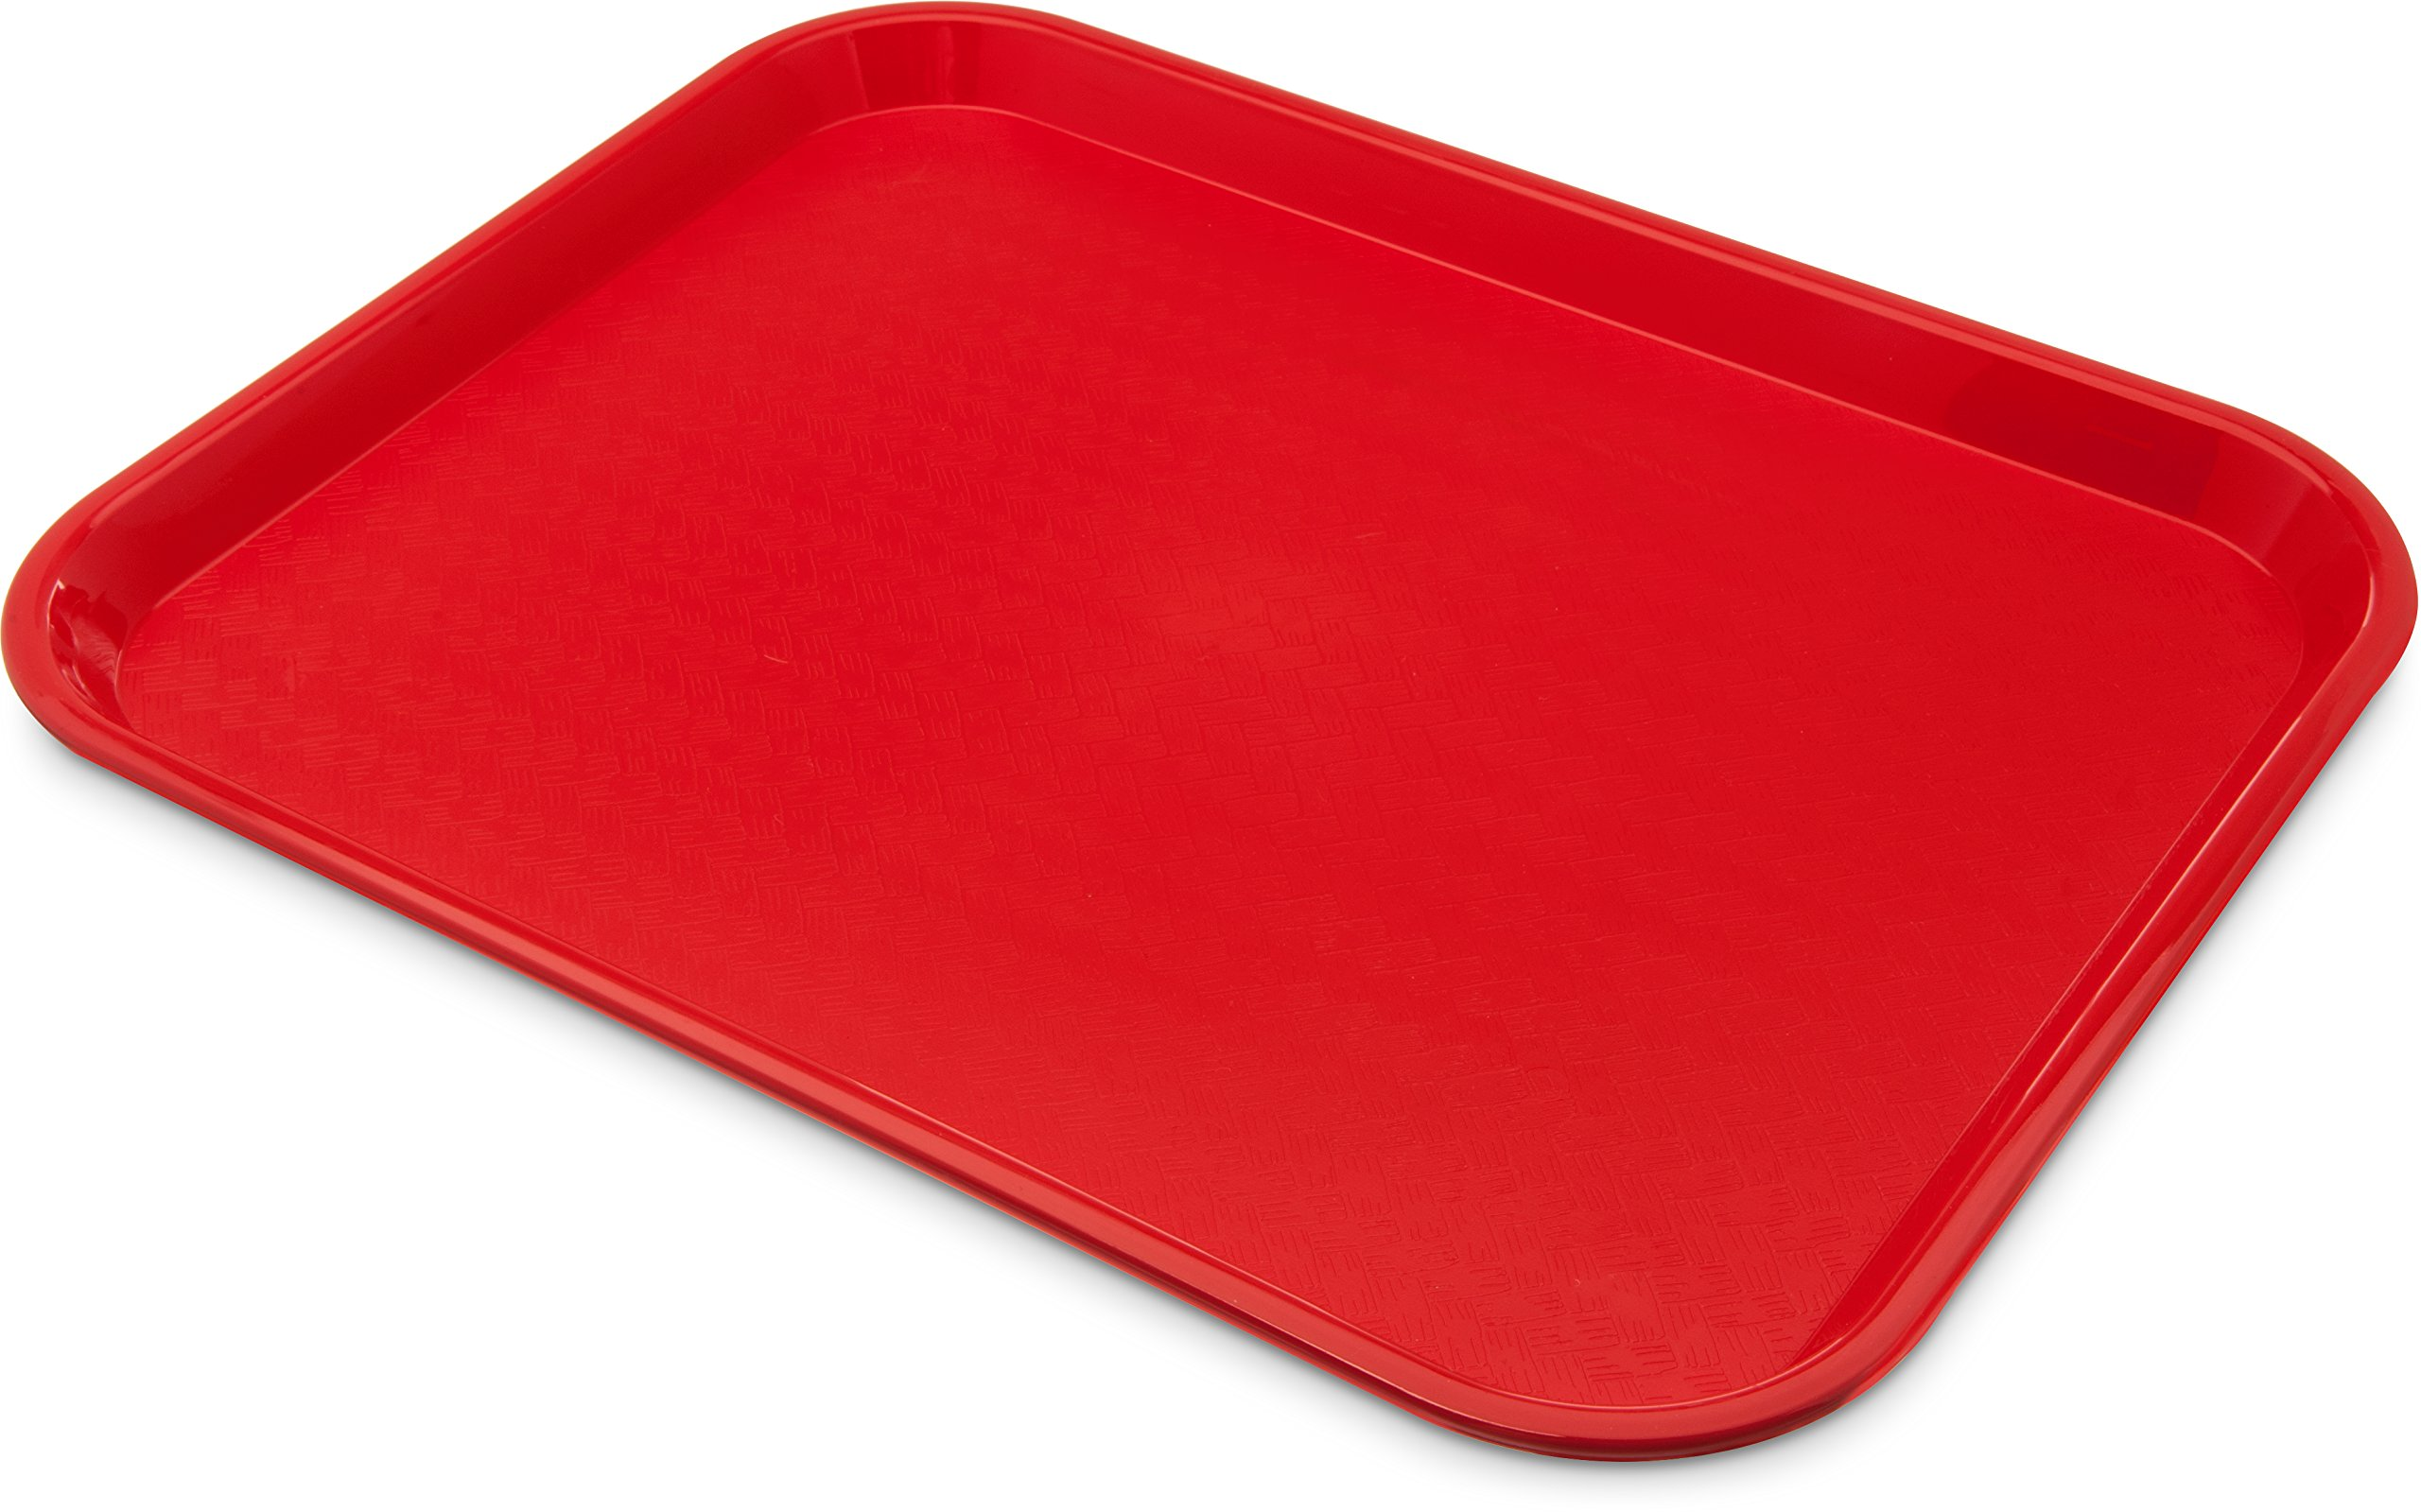 Carlisle CT1418-8105 Café Standard Cafeteria / Fast Food Tray, 14'' x 18'', Red (Pack of 6) by Carlisle